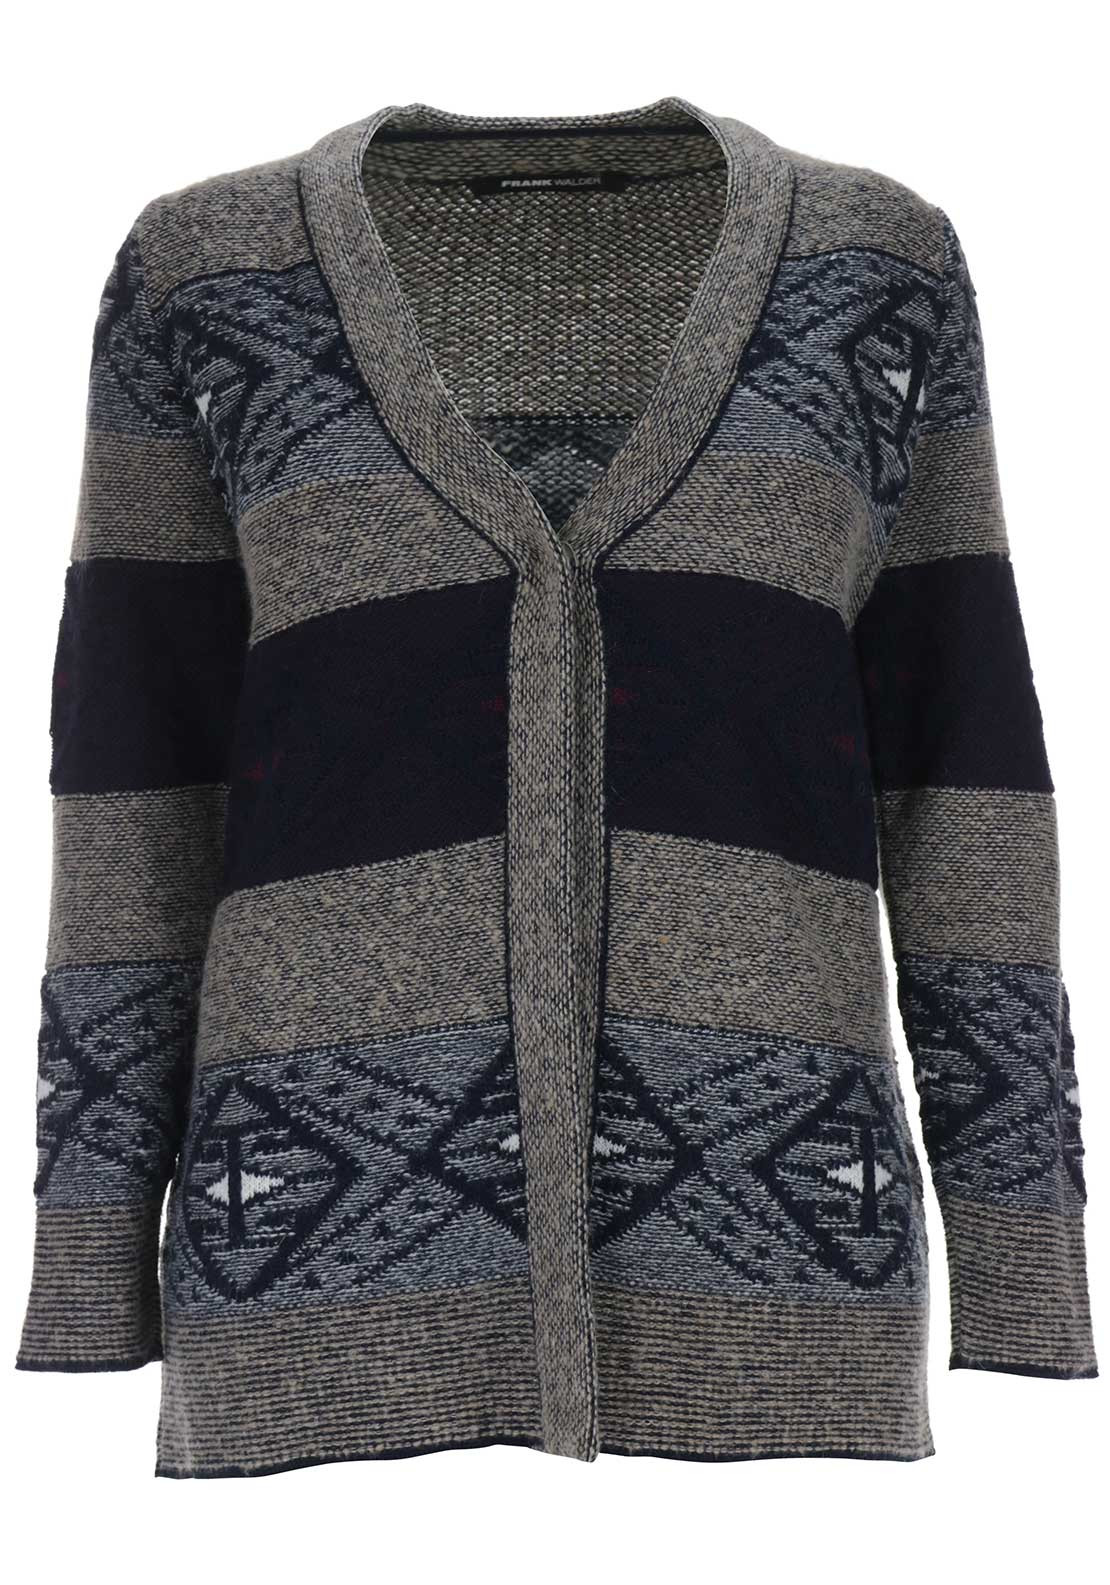 Frank Walder Wool Blend Print Cardigan, Multi-Coloured